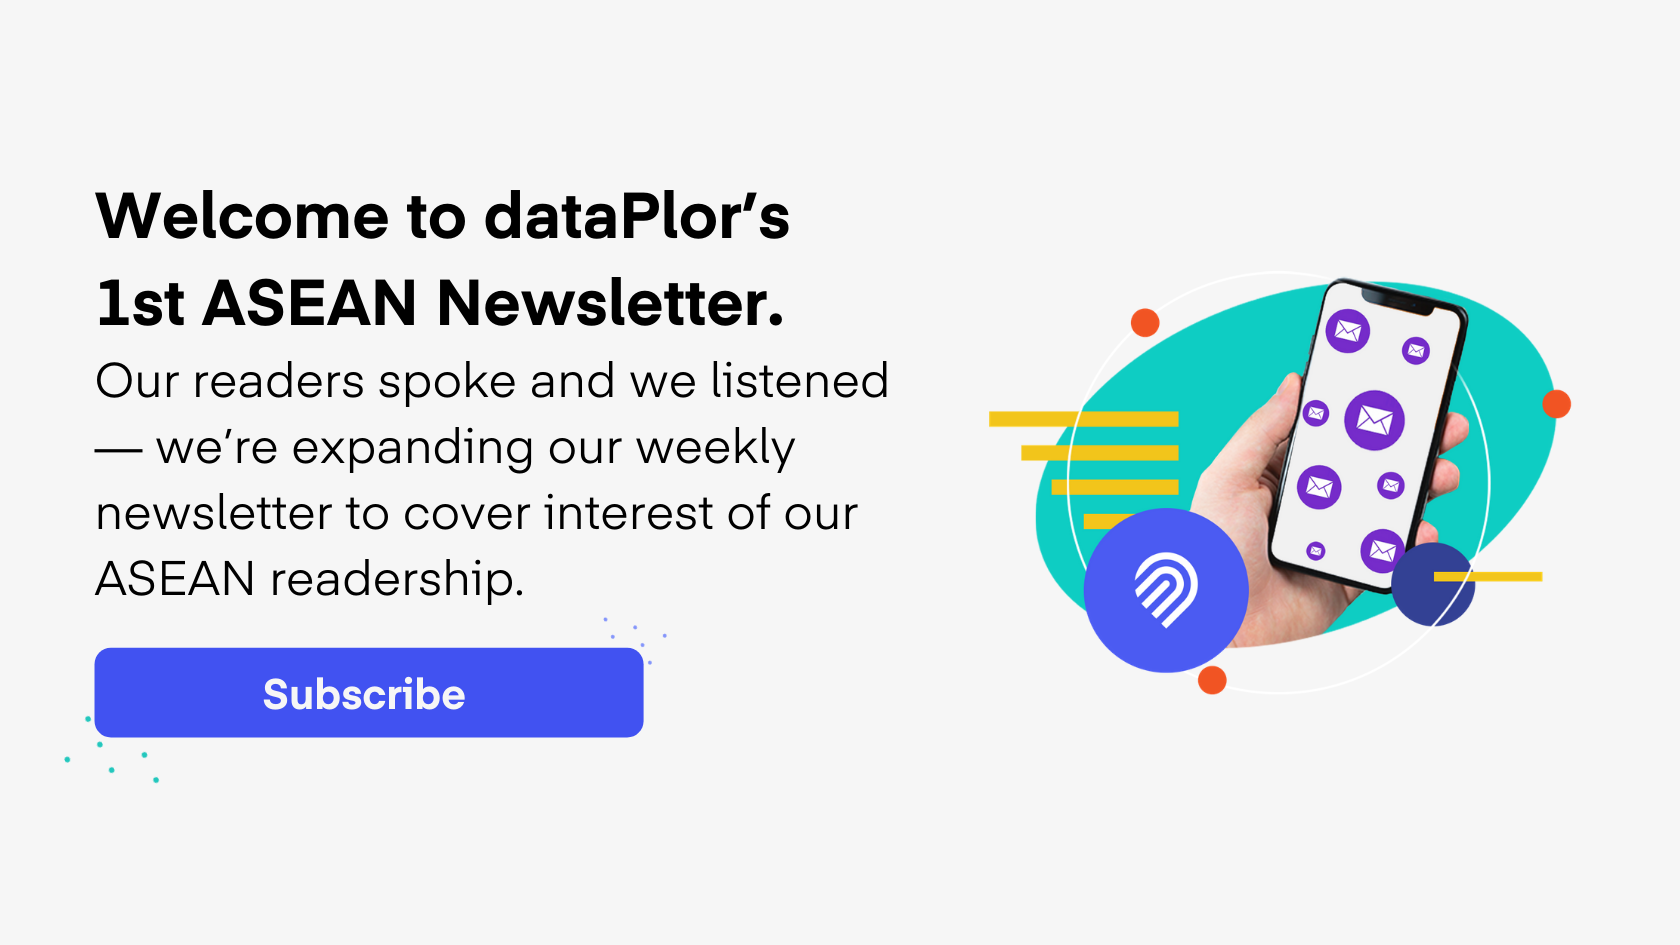 Subscribe to dataPlor's ASEAN Weekly Newsletter